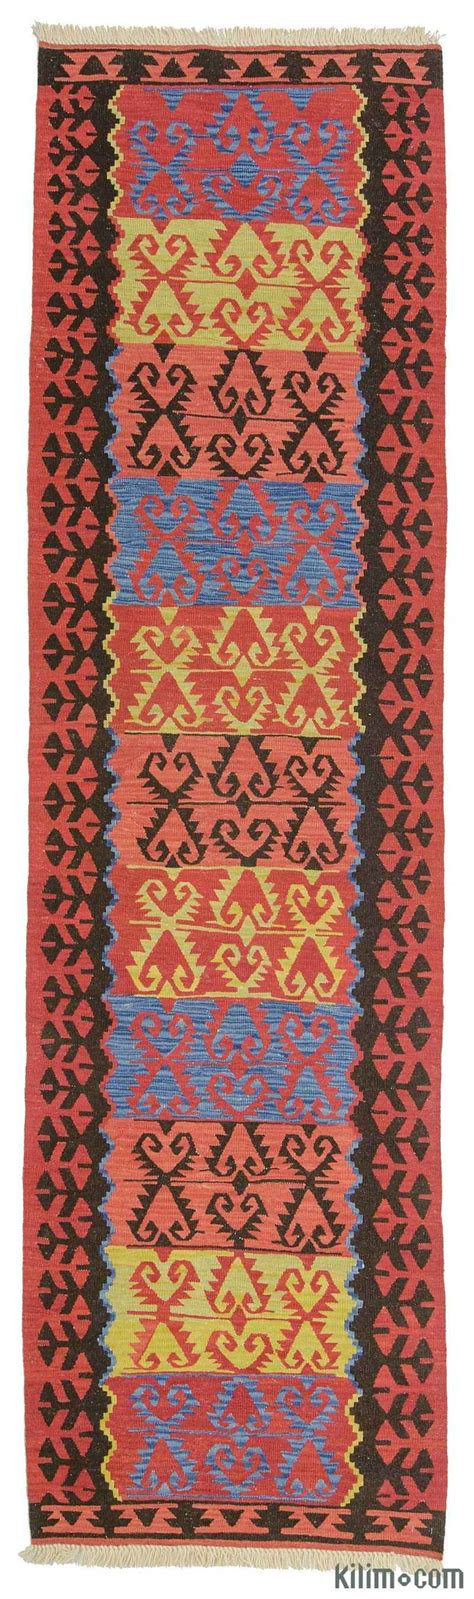 Kilim Runner Rugs K0010798 New Turkish Kilim Runner Rug